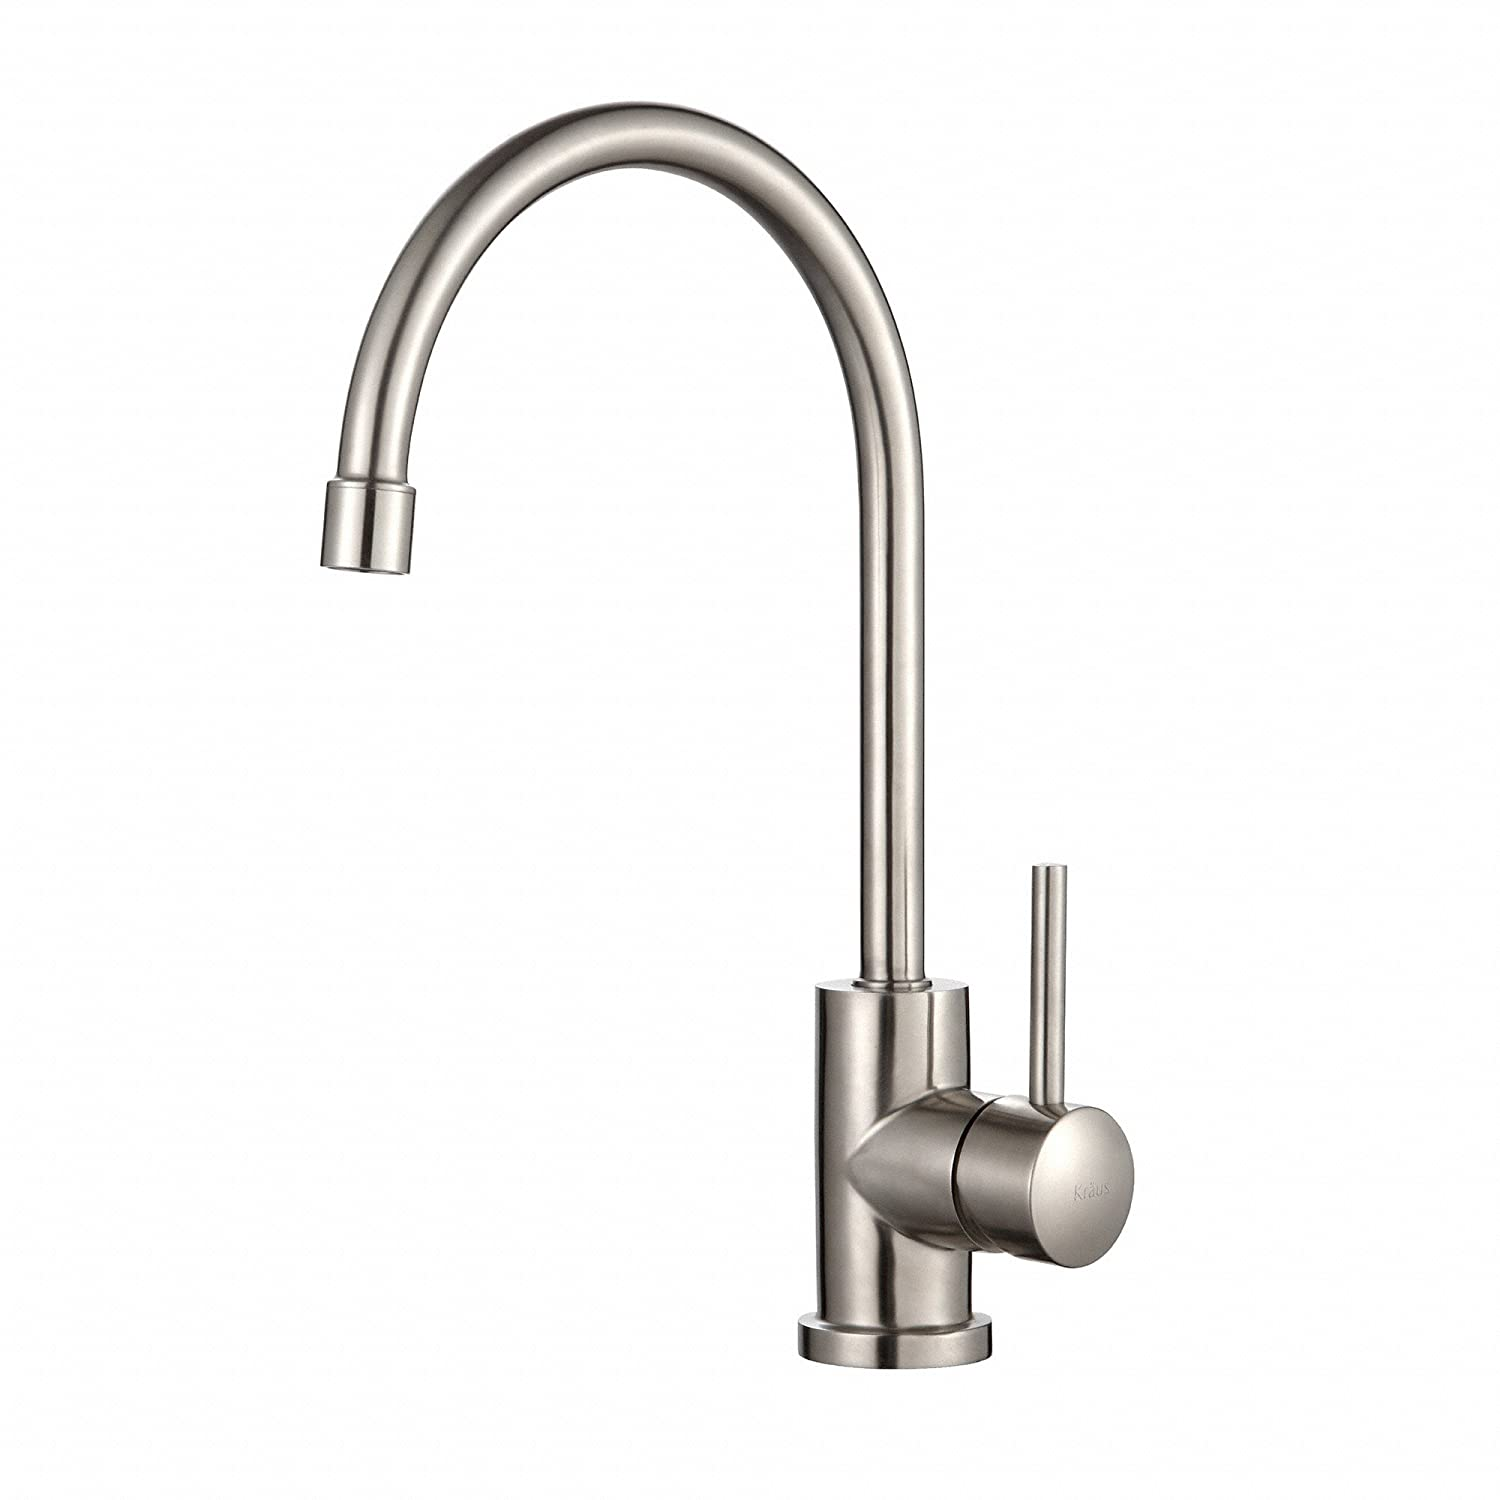 spray vigo faucets pull out stainless steel industries p kitchen h in faucet